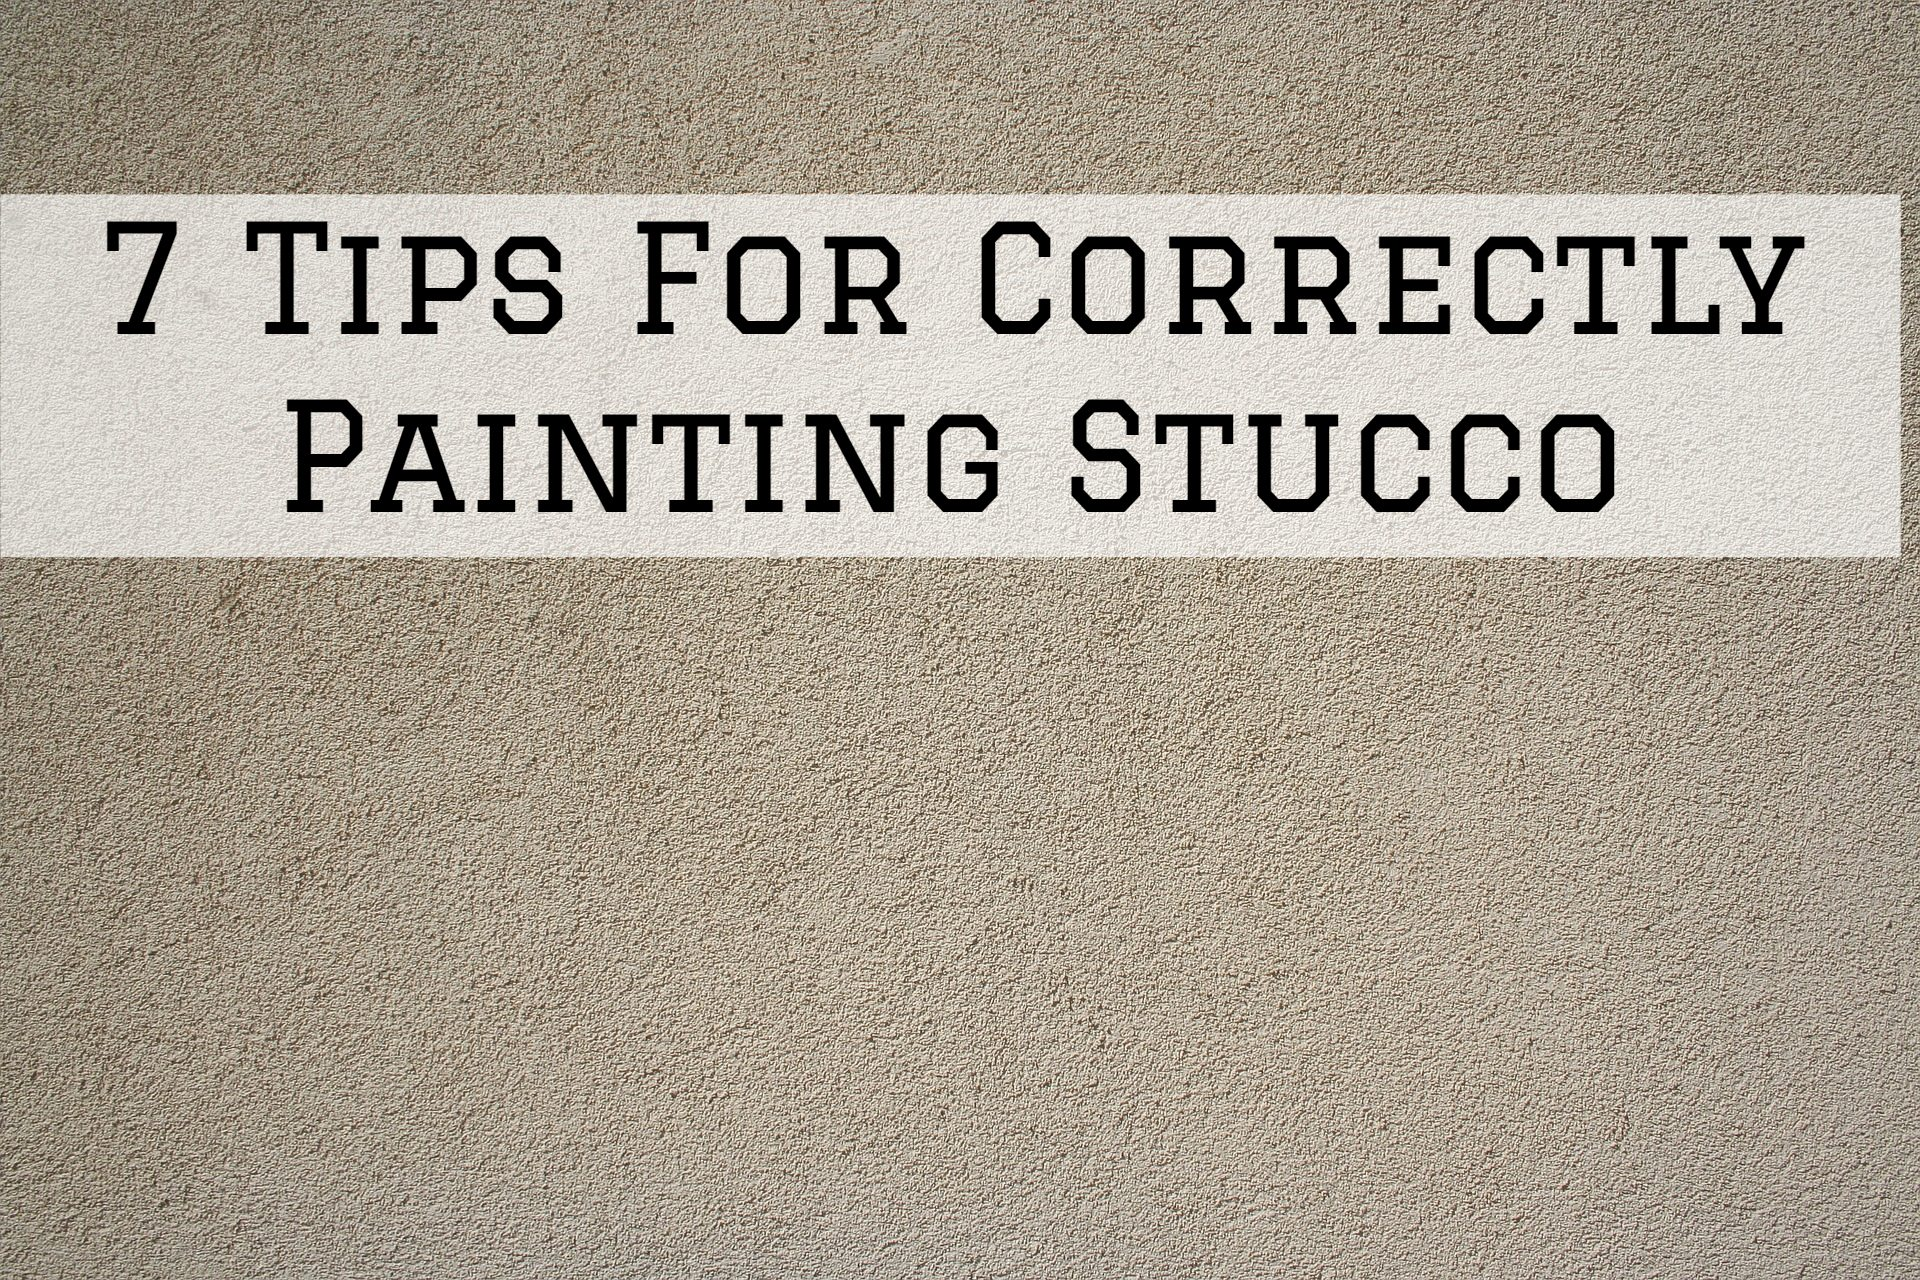 7 Tips For Correctly Painting Stucco in Omaha, NE